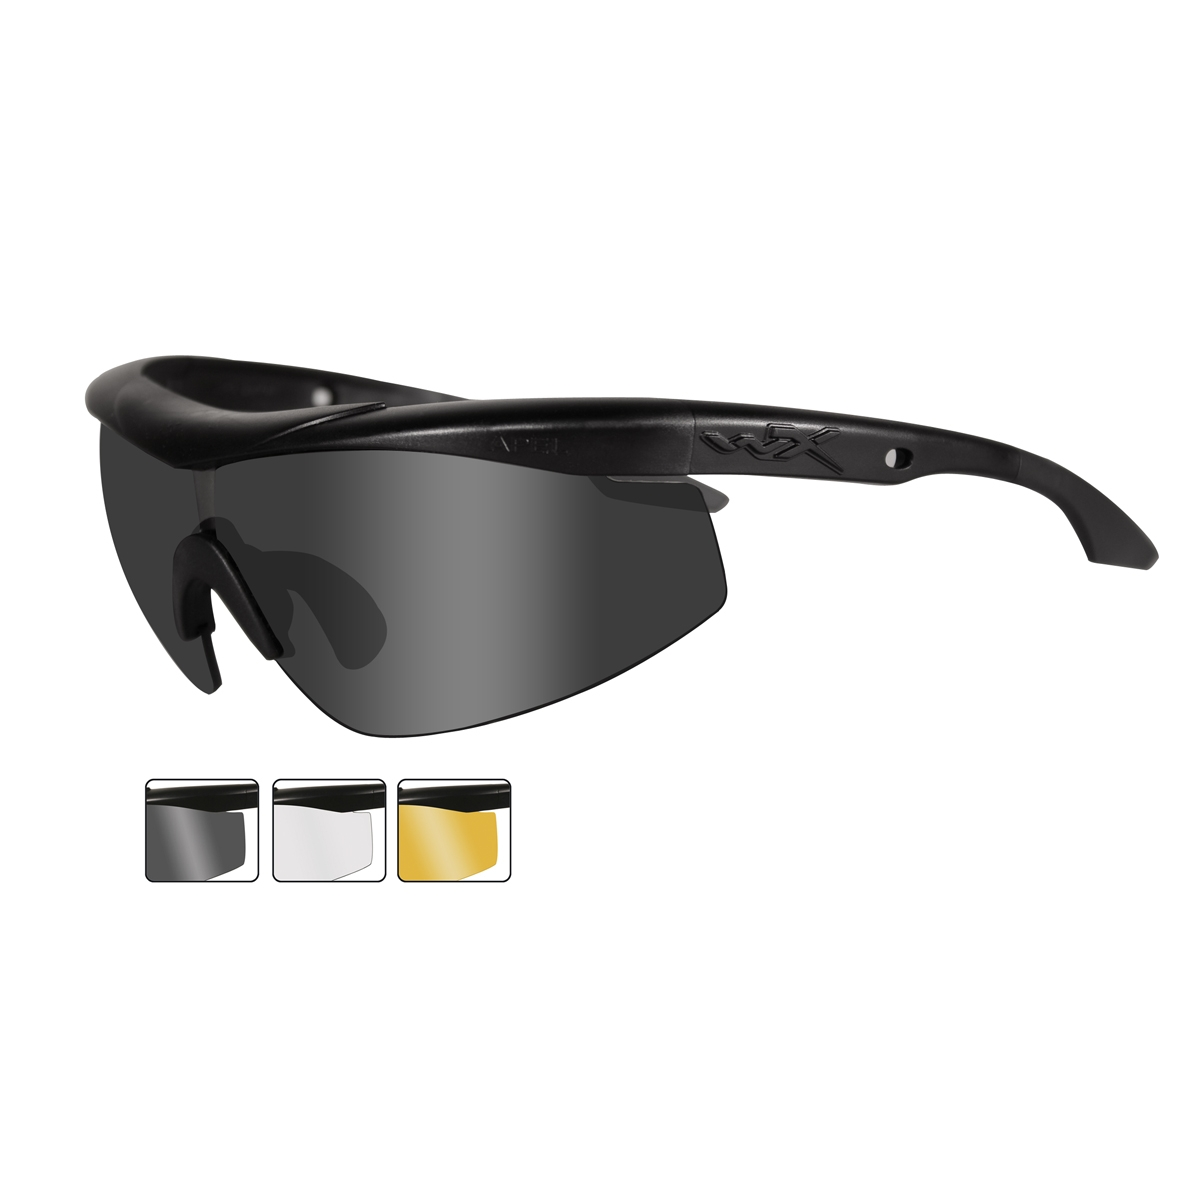 d357336994 Wiley X Talon Safety Glasses - Matte Black Frame - Grey